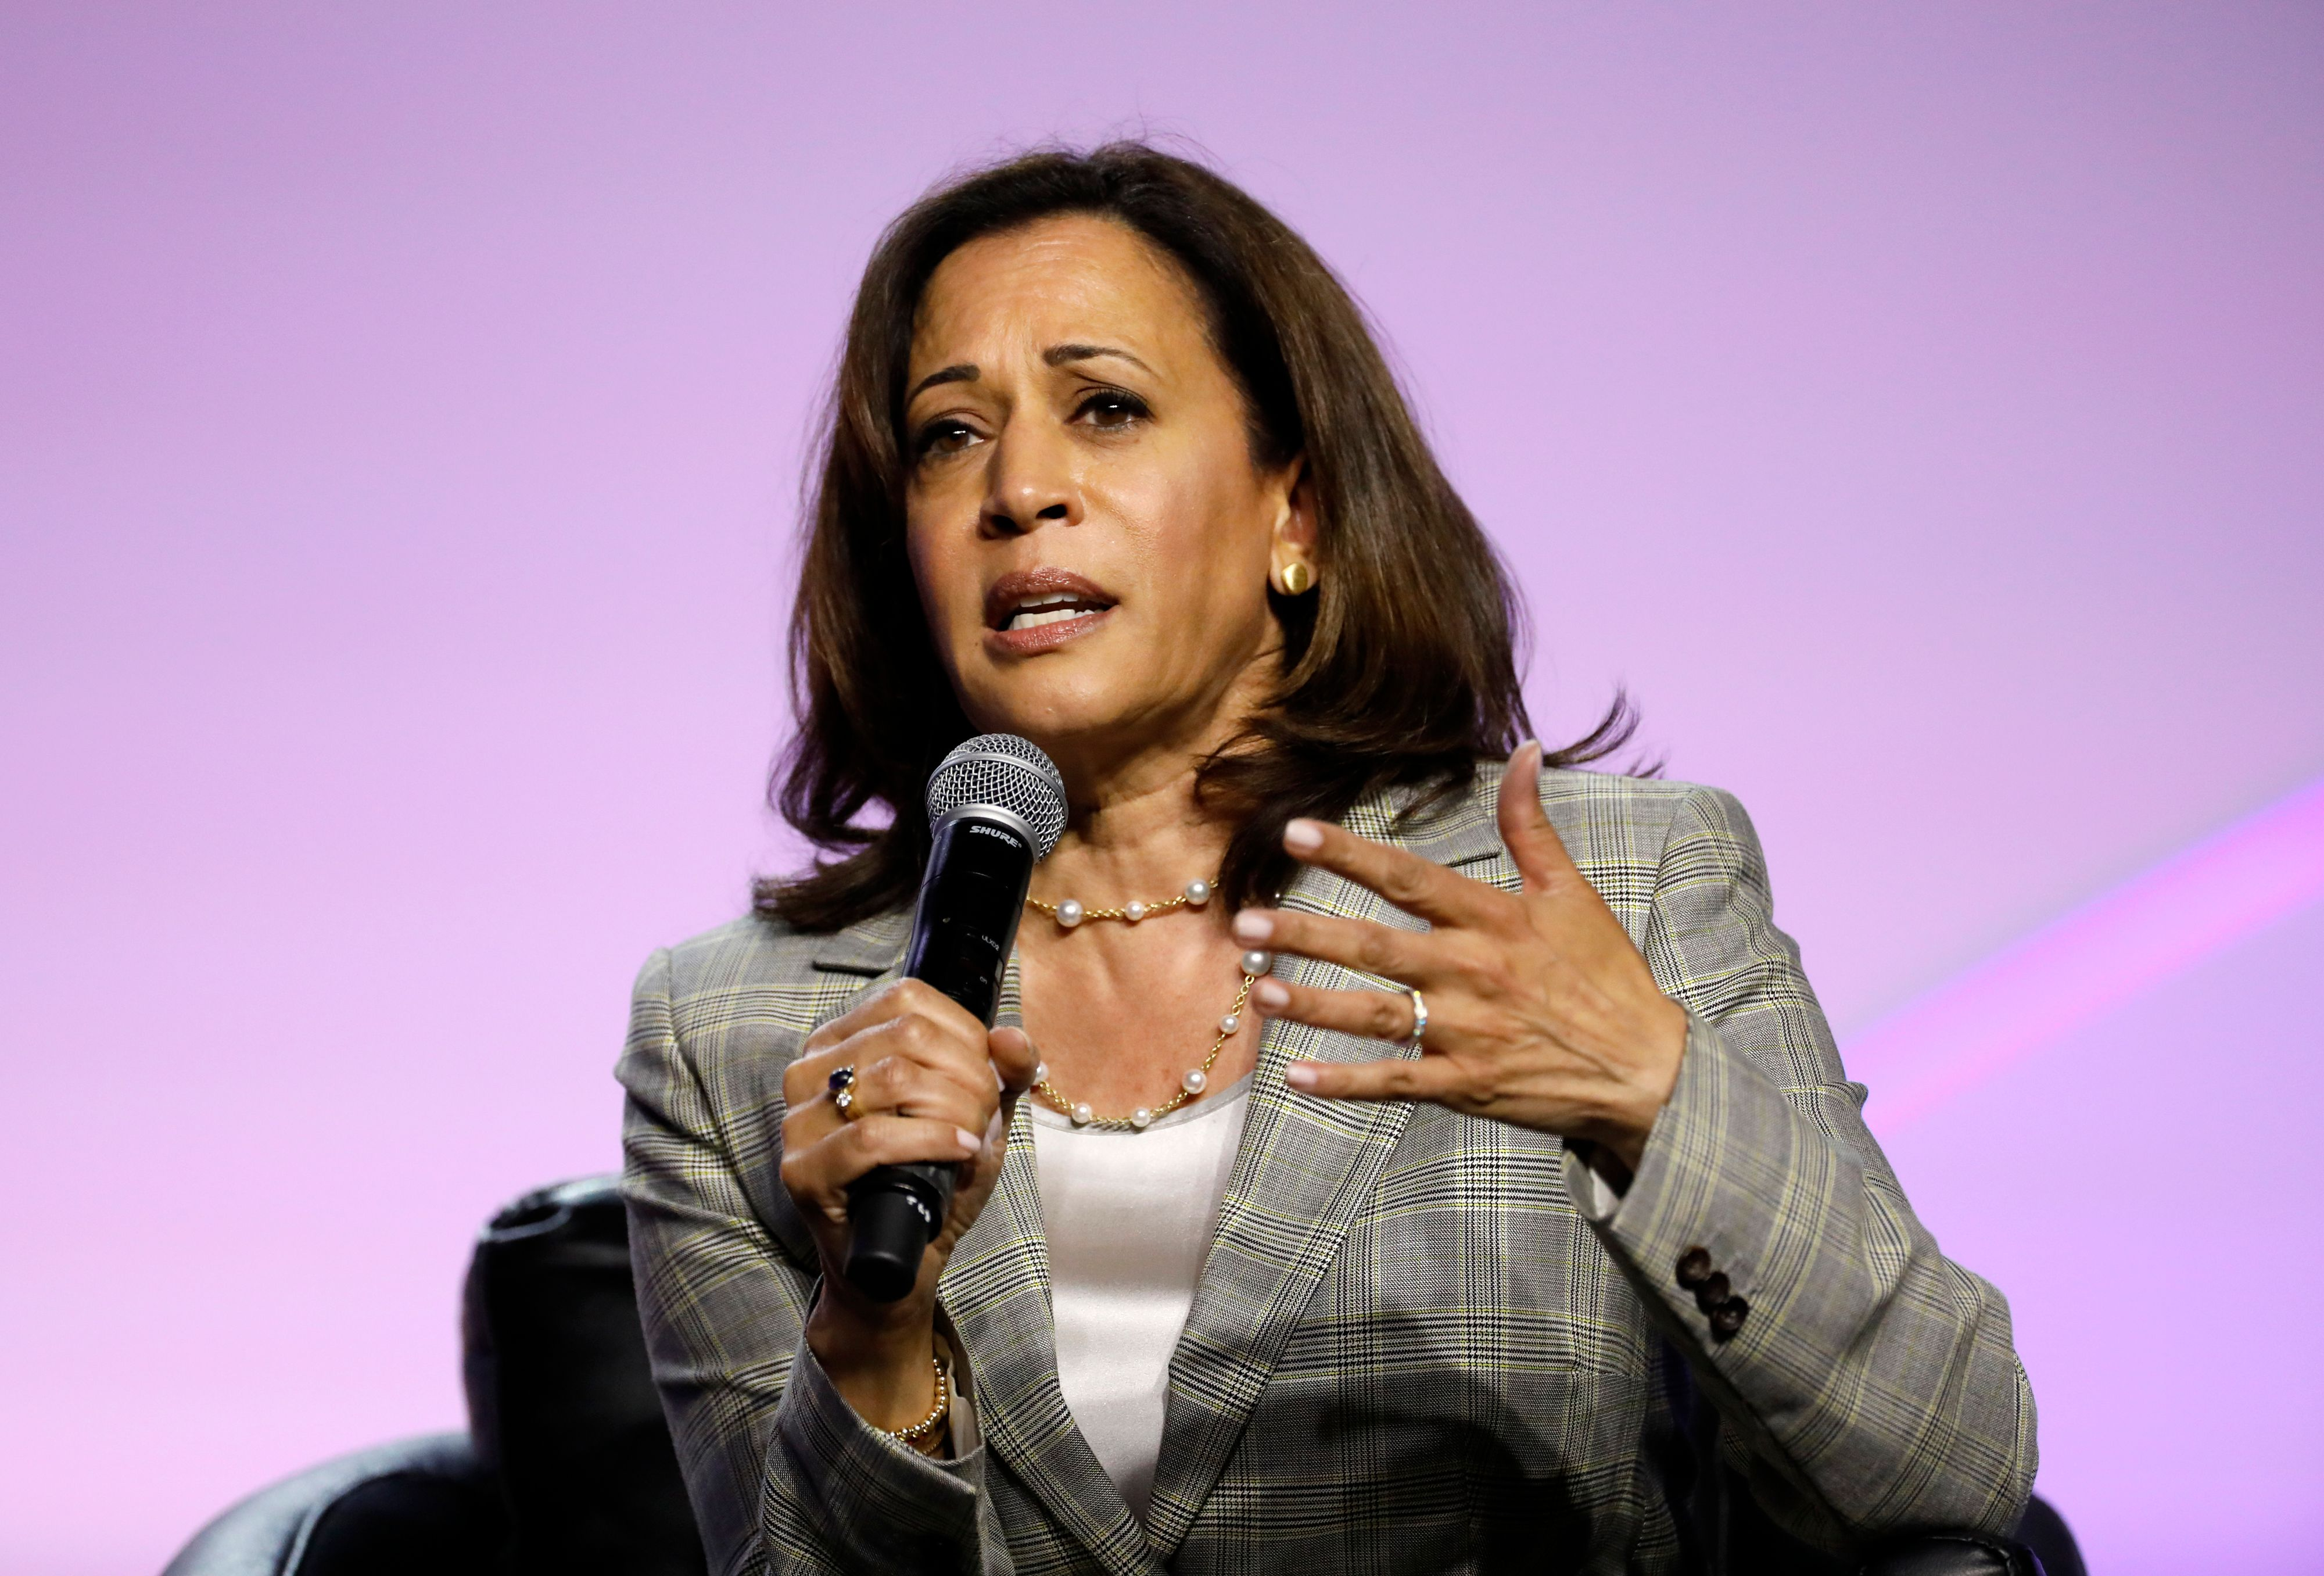 Kamala Harris Wants To Invest In Stem At Hbcus But Does Her Plan Ignore Pressing Needs